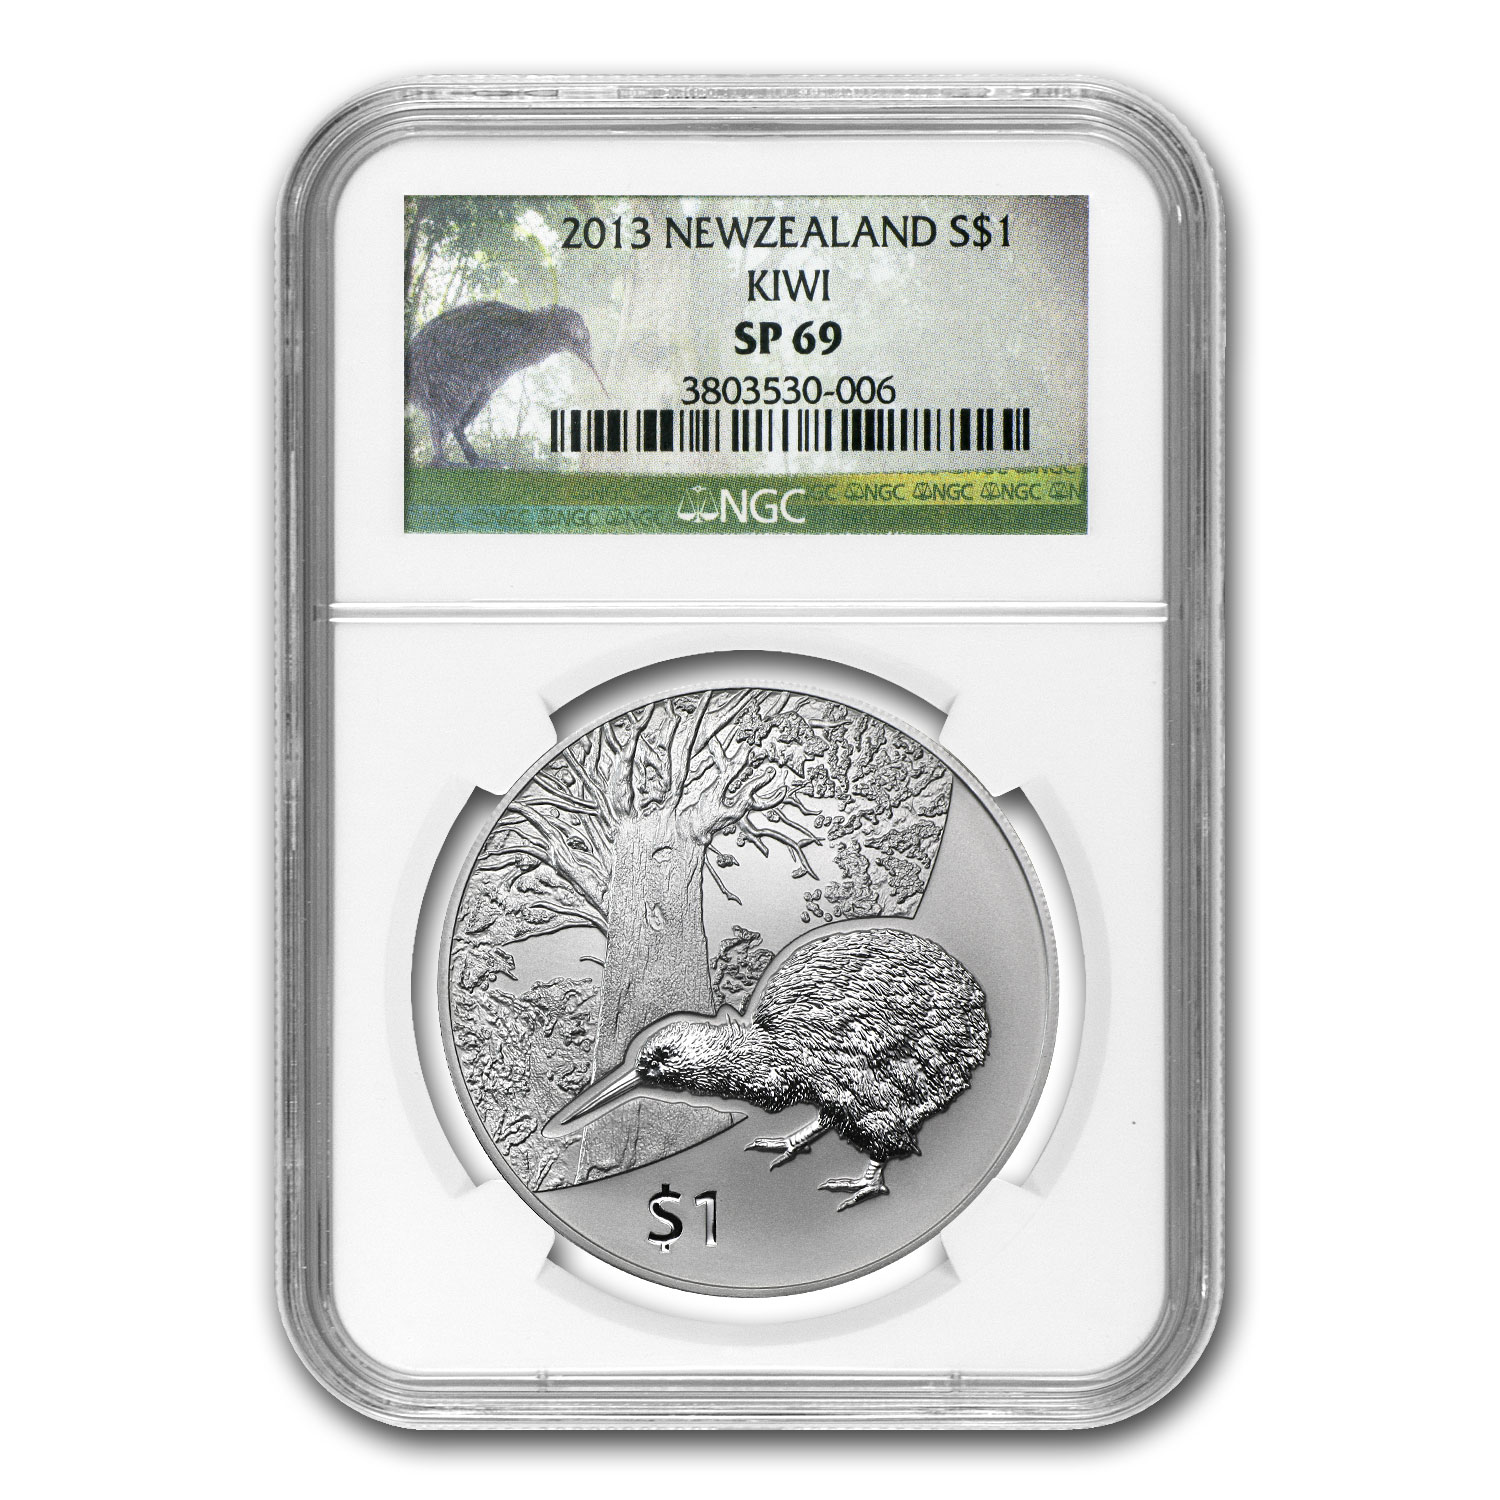 2013 New Zealand 1 oz Silver Treasures $1 Kiwi SP-69 NGC